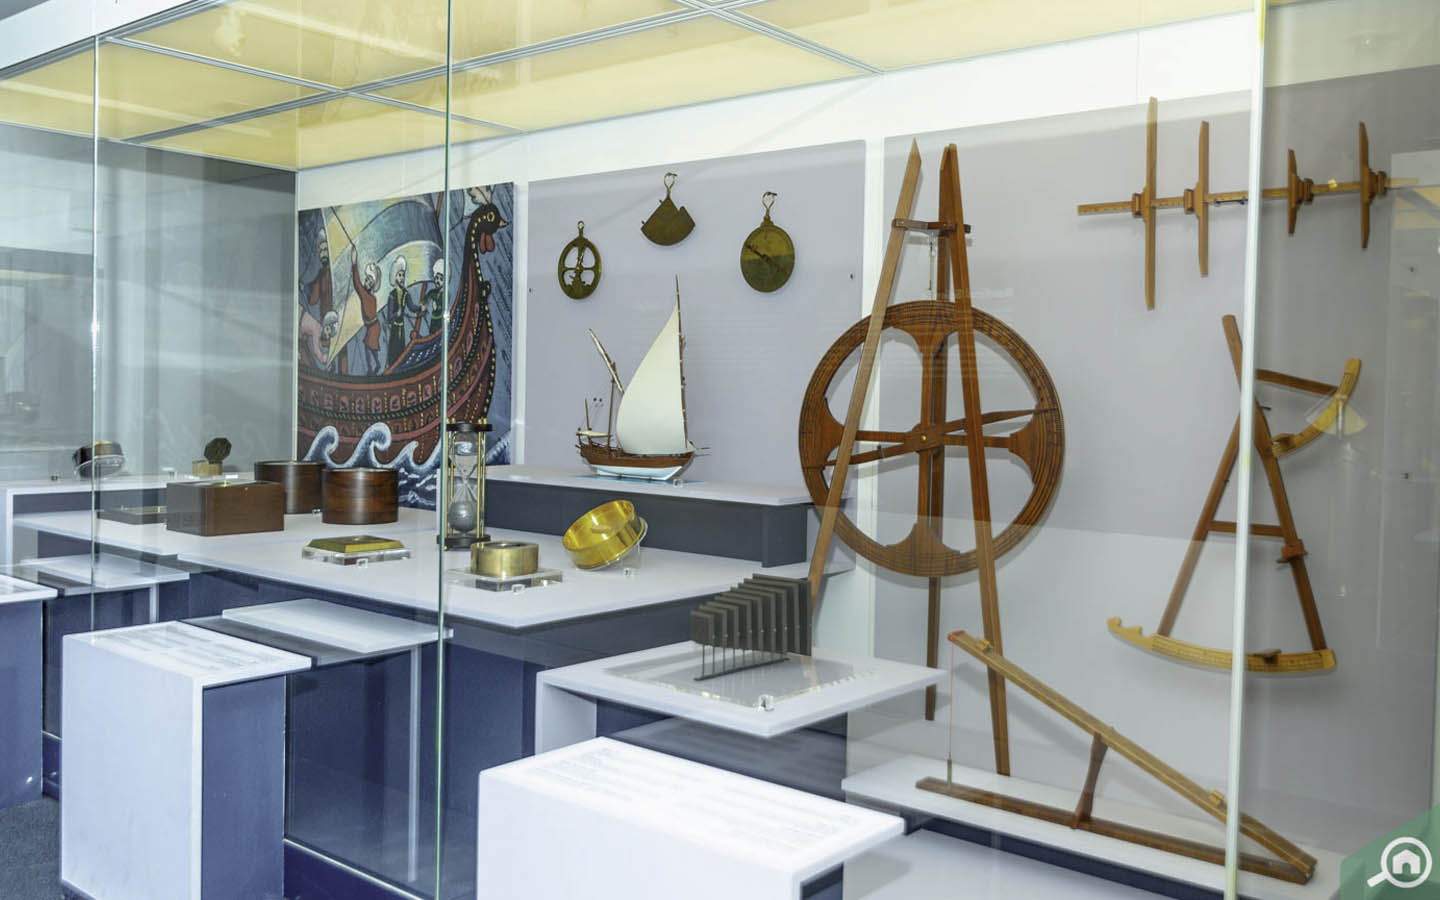 Astrolabes at Sharjah Museum of Islamic Civilisation